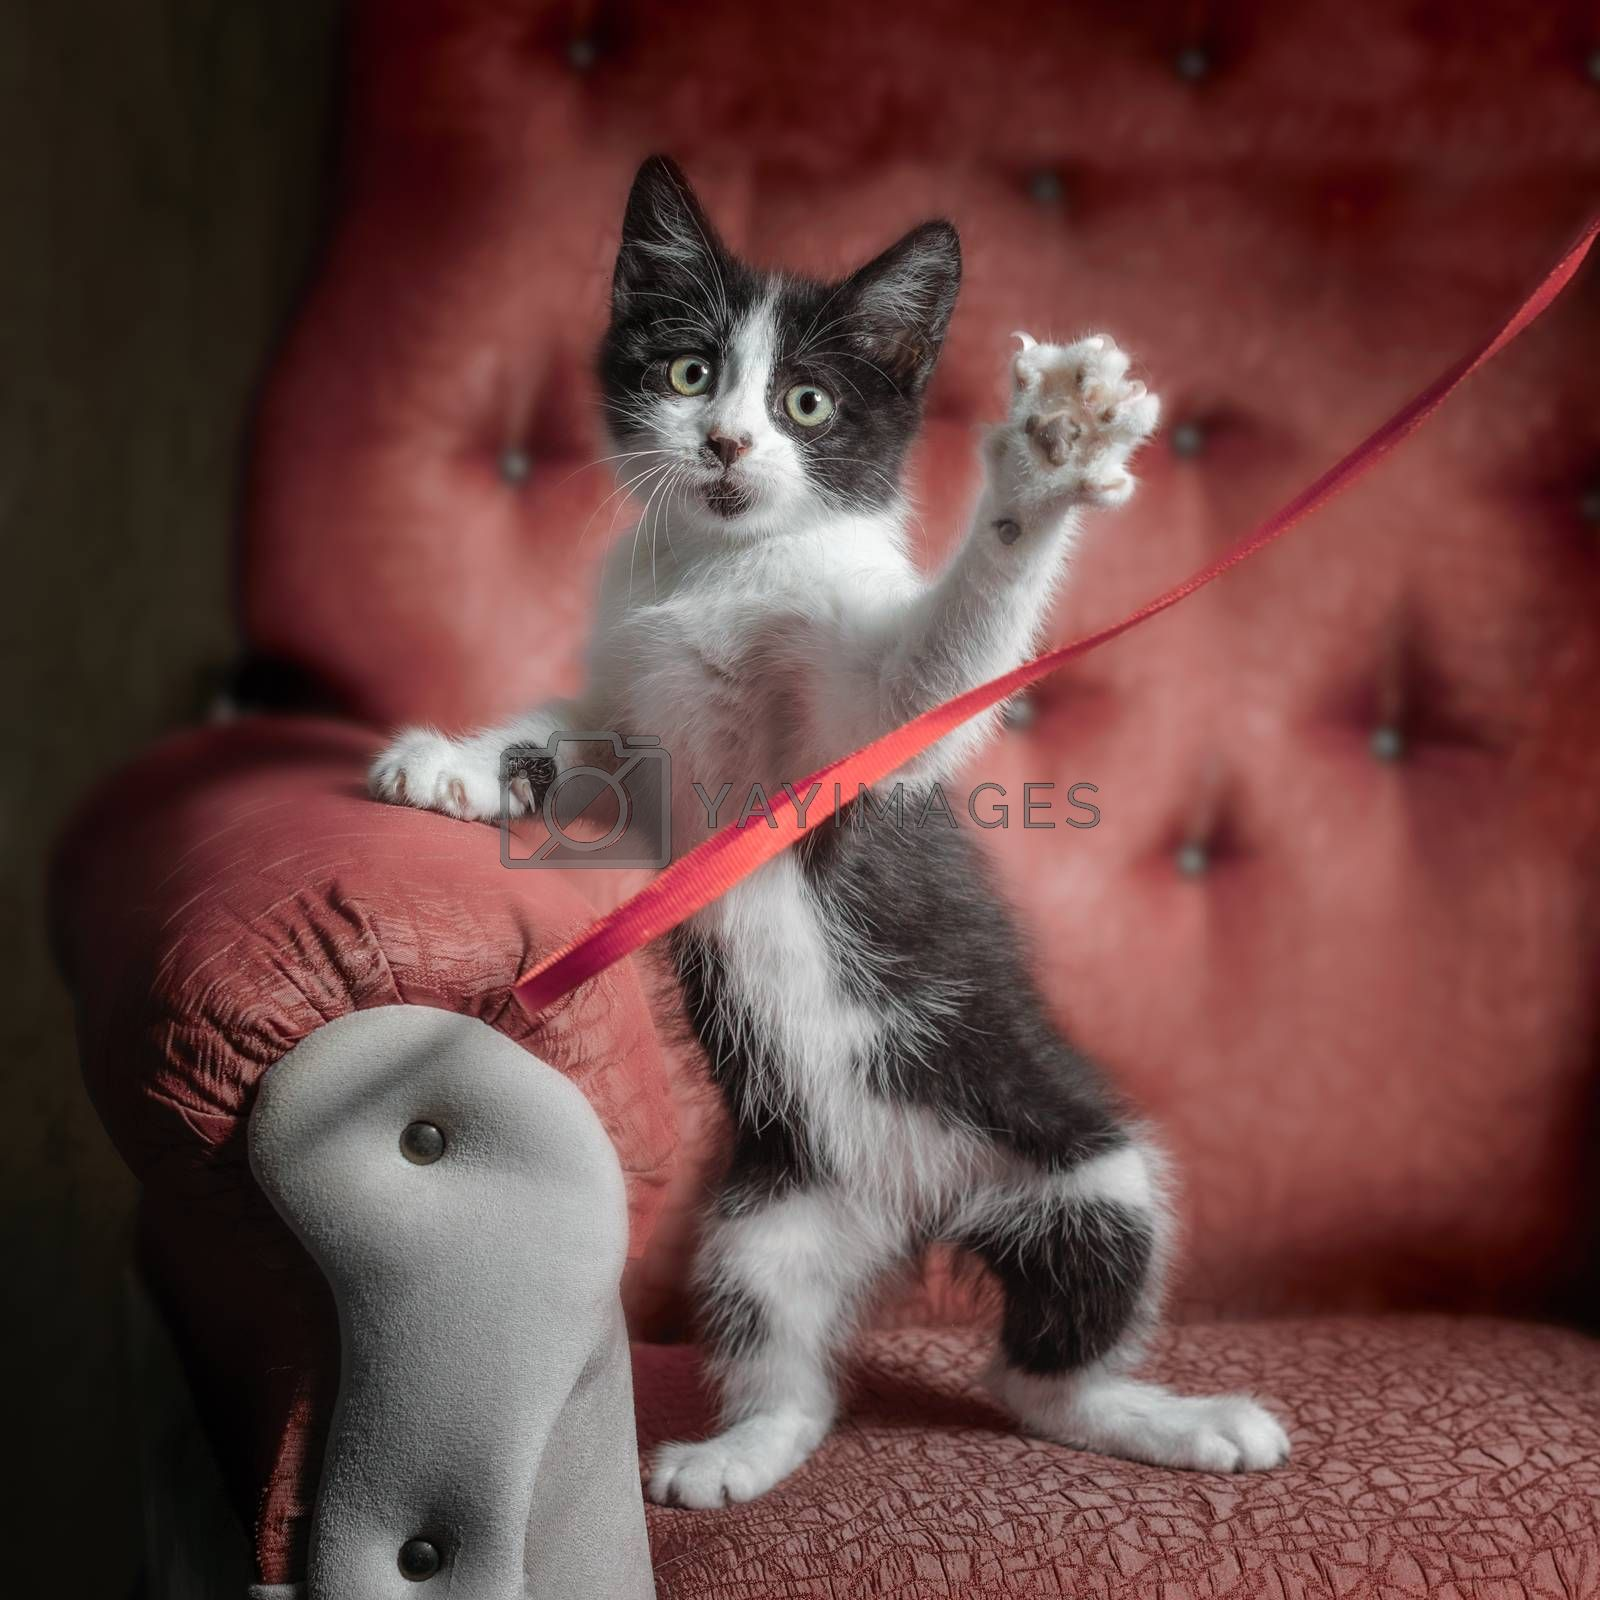 black and white outbred kitten on a red sofa plays with a ribbon